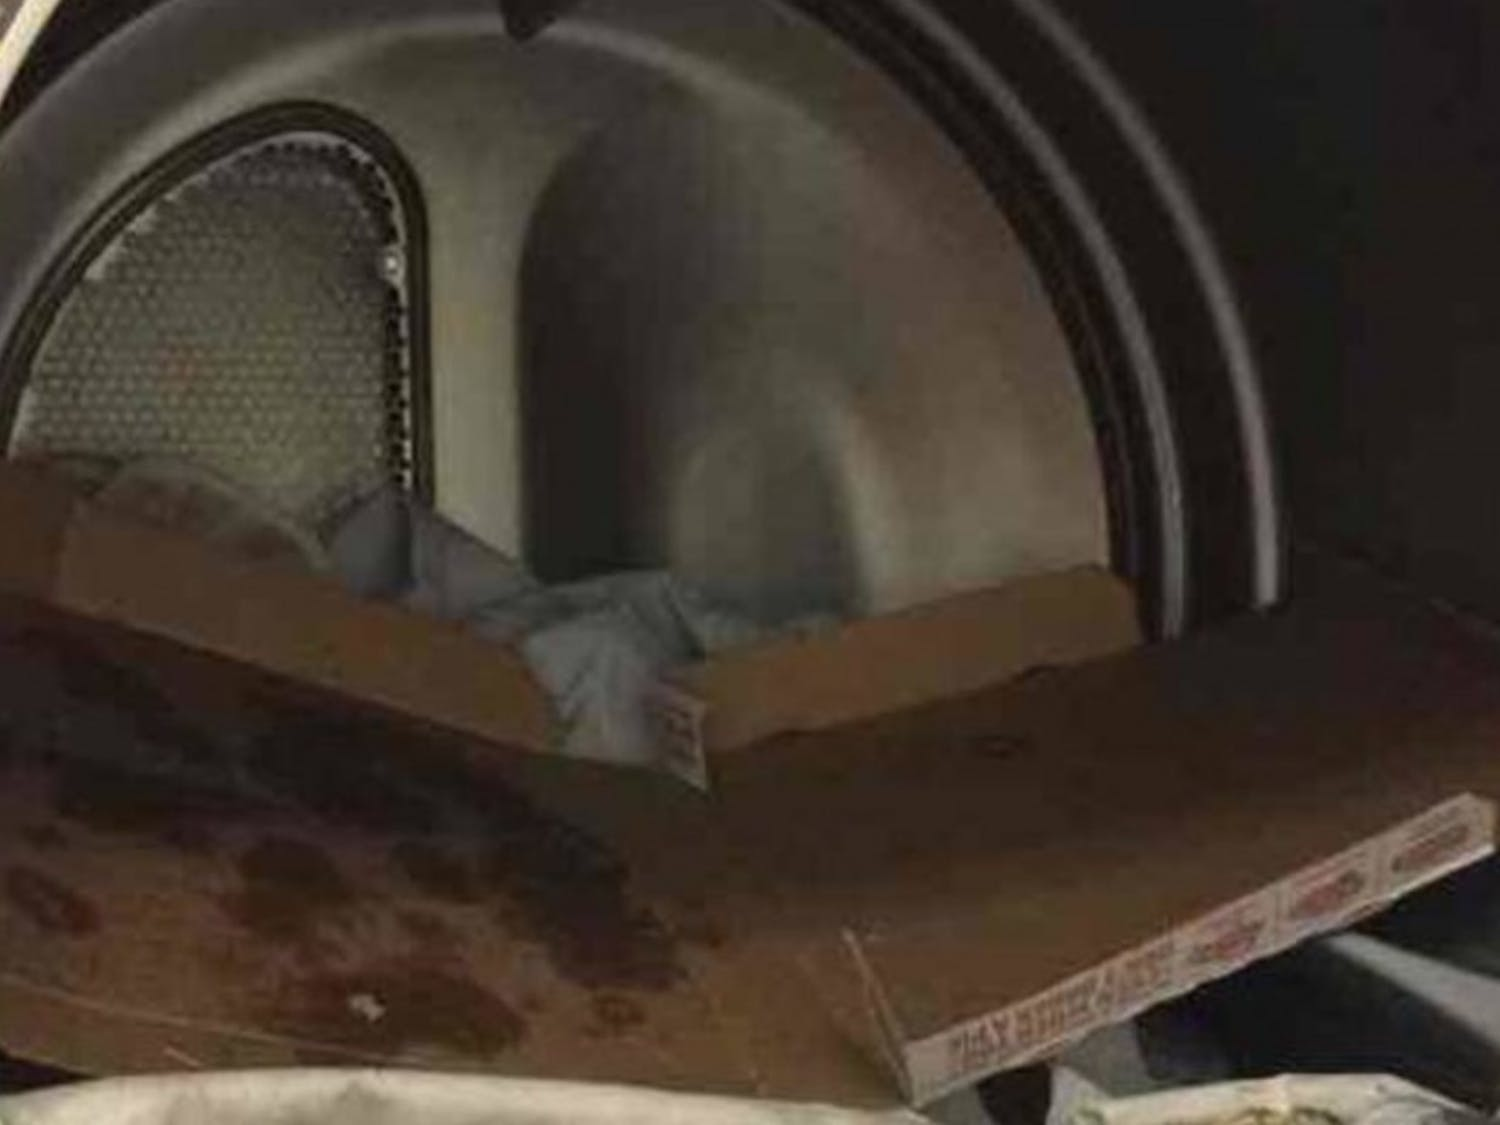 Another East Campus fire caused a residence hall to be evacuated Monday—a student found a pizza box in a dryer before the fire alarm was activated.